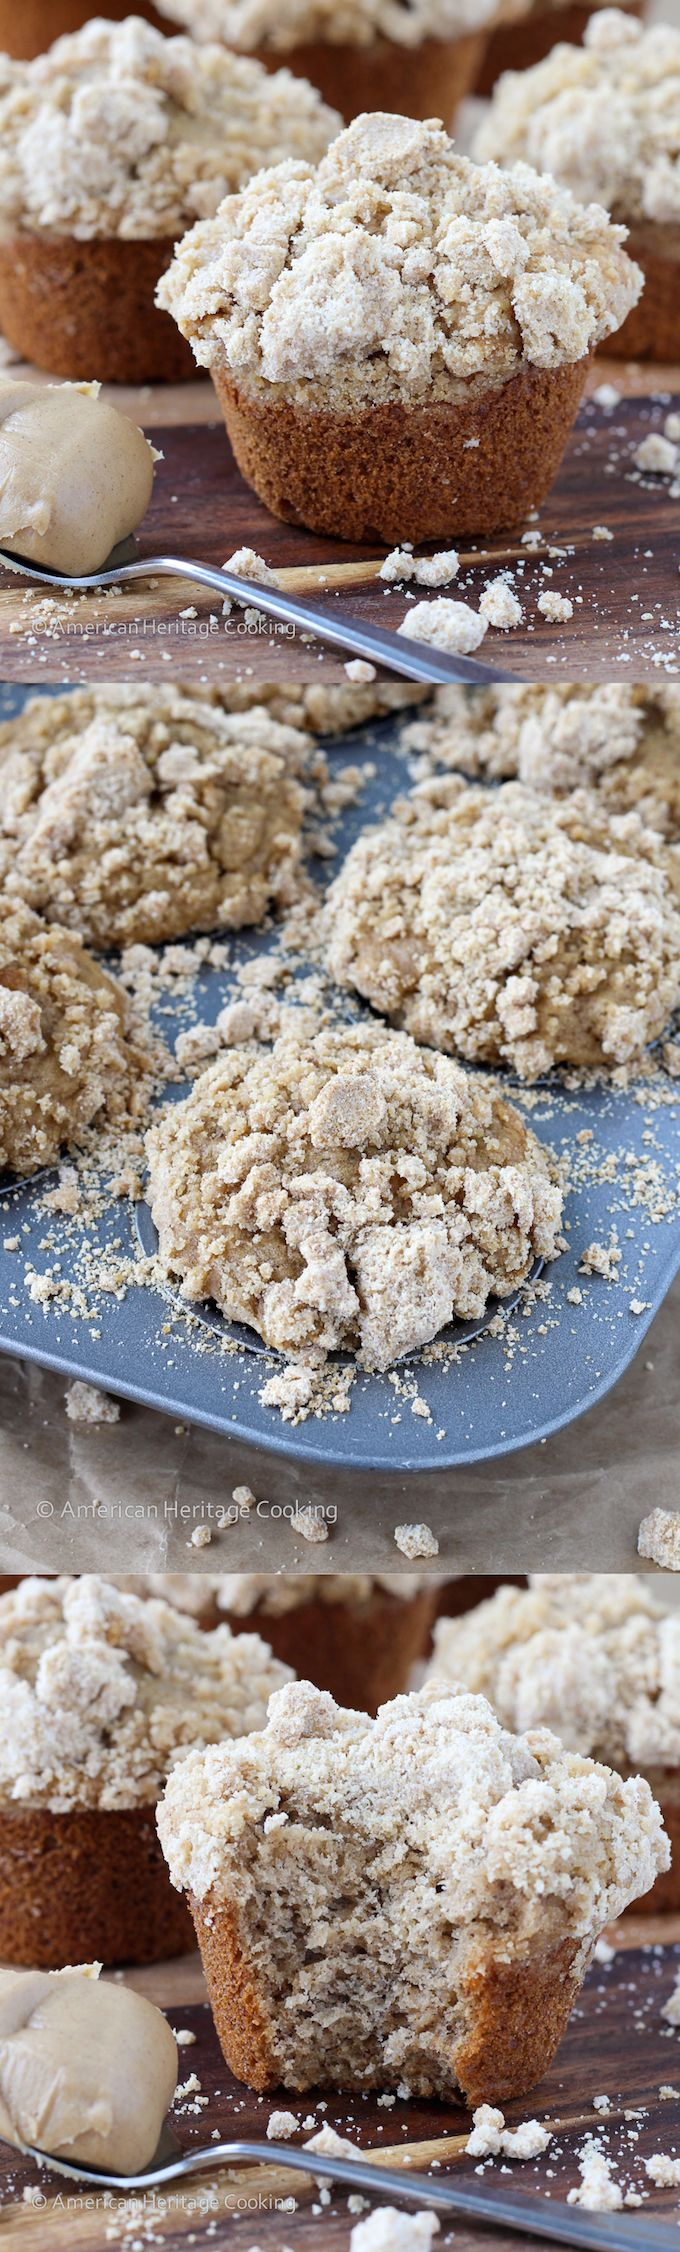 Peanut Butter Banana Muffins with Peanut Butter Streusel Topping - There is never enough streusel!! American Heritage Cooking